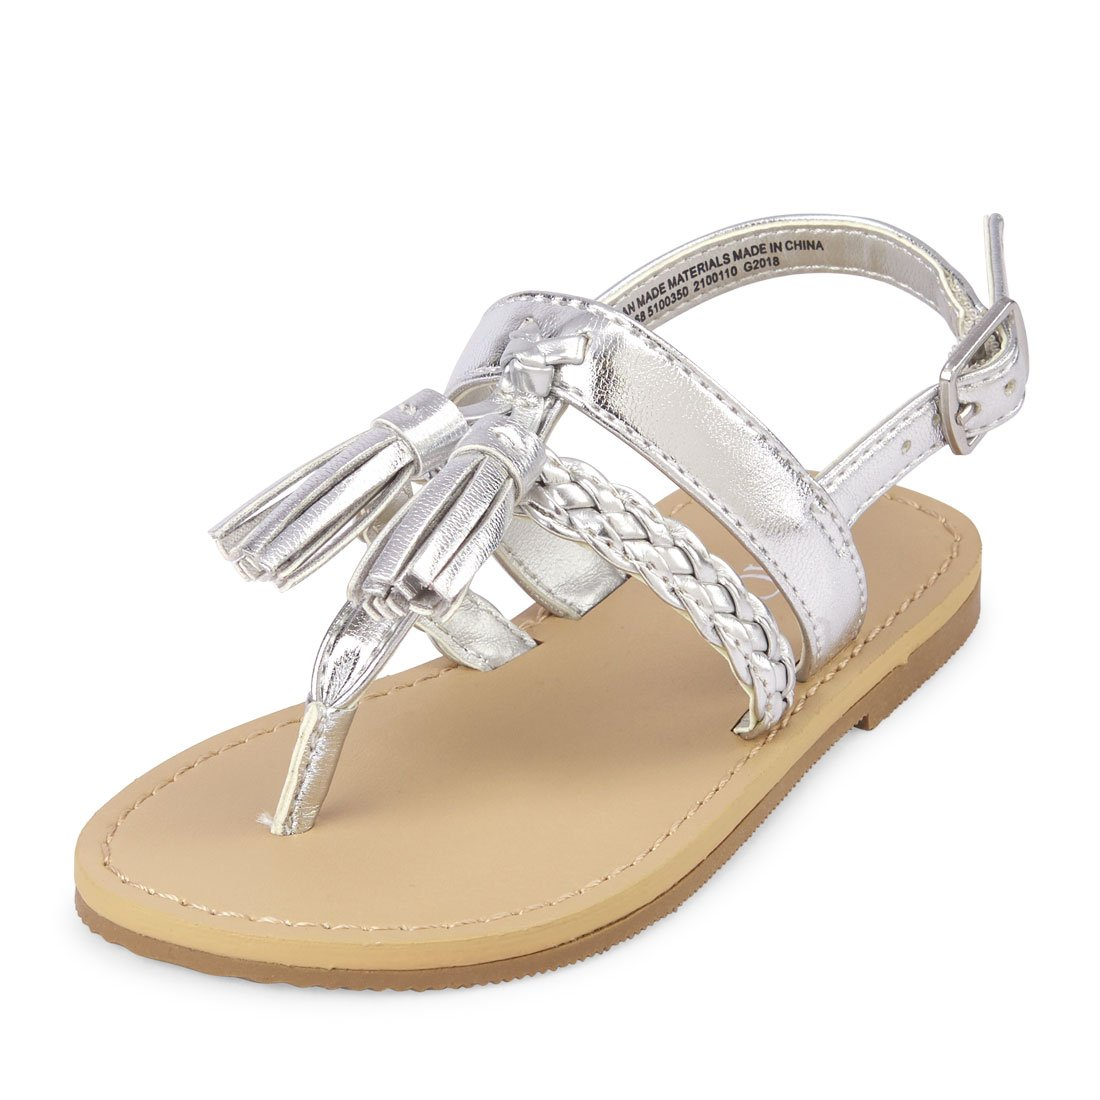 The Children's Place Kids' Tg Tassel Candy Sandal The Children' s Place